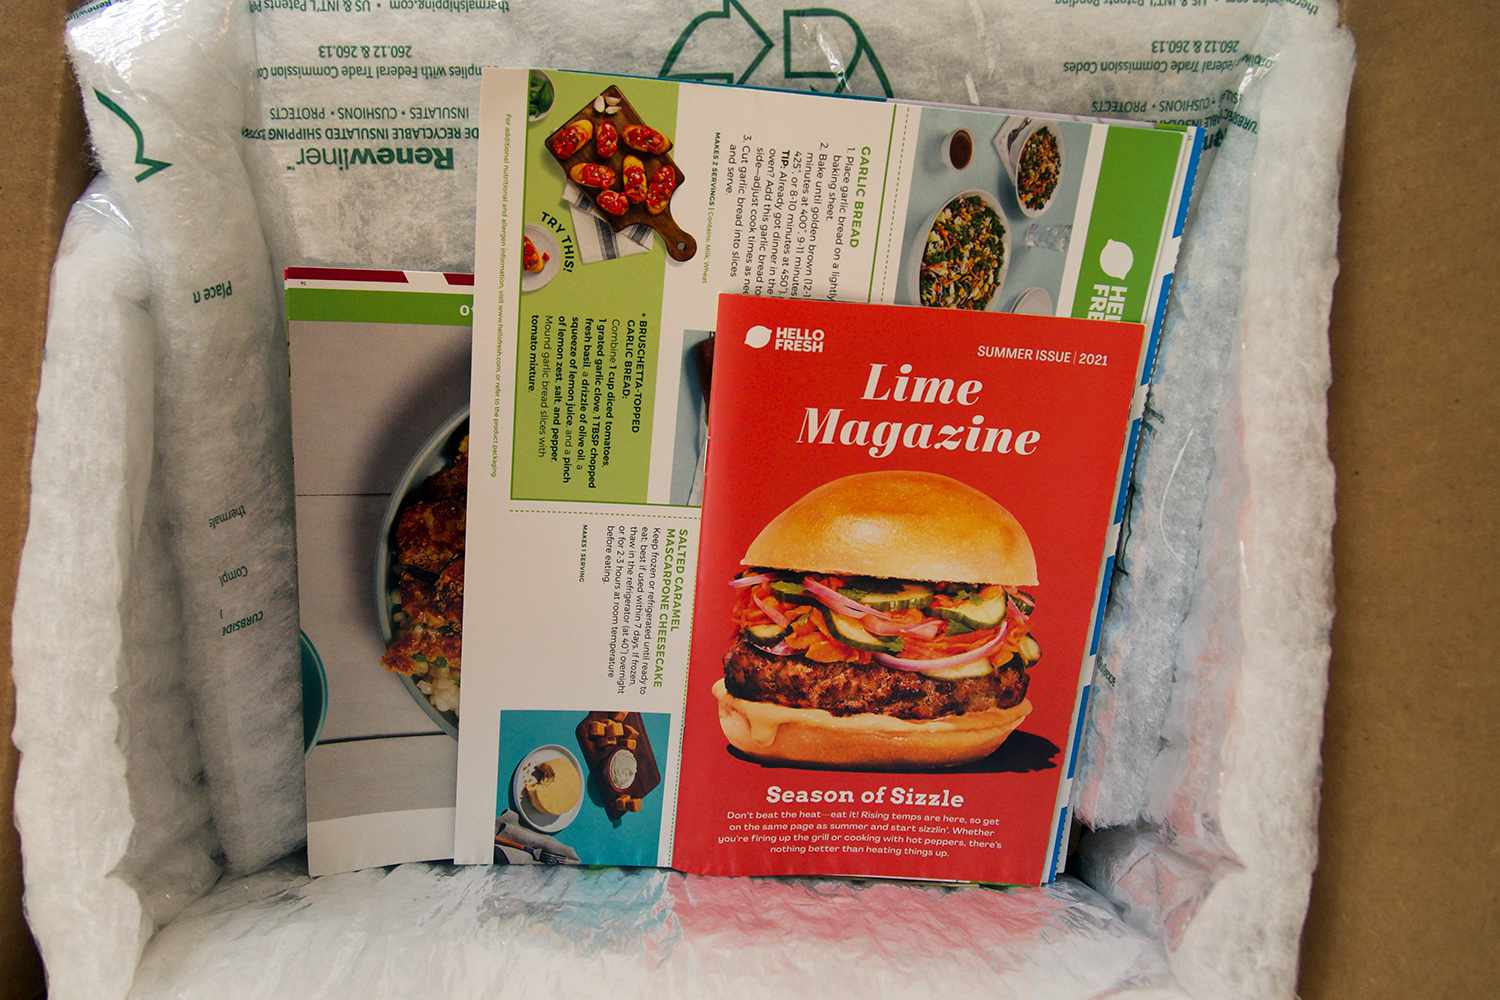 HelloFresh packaging and extra material